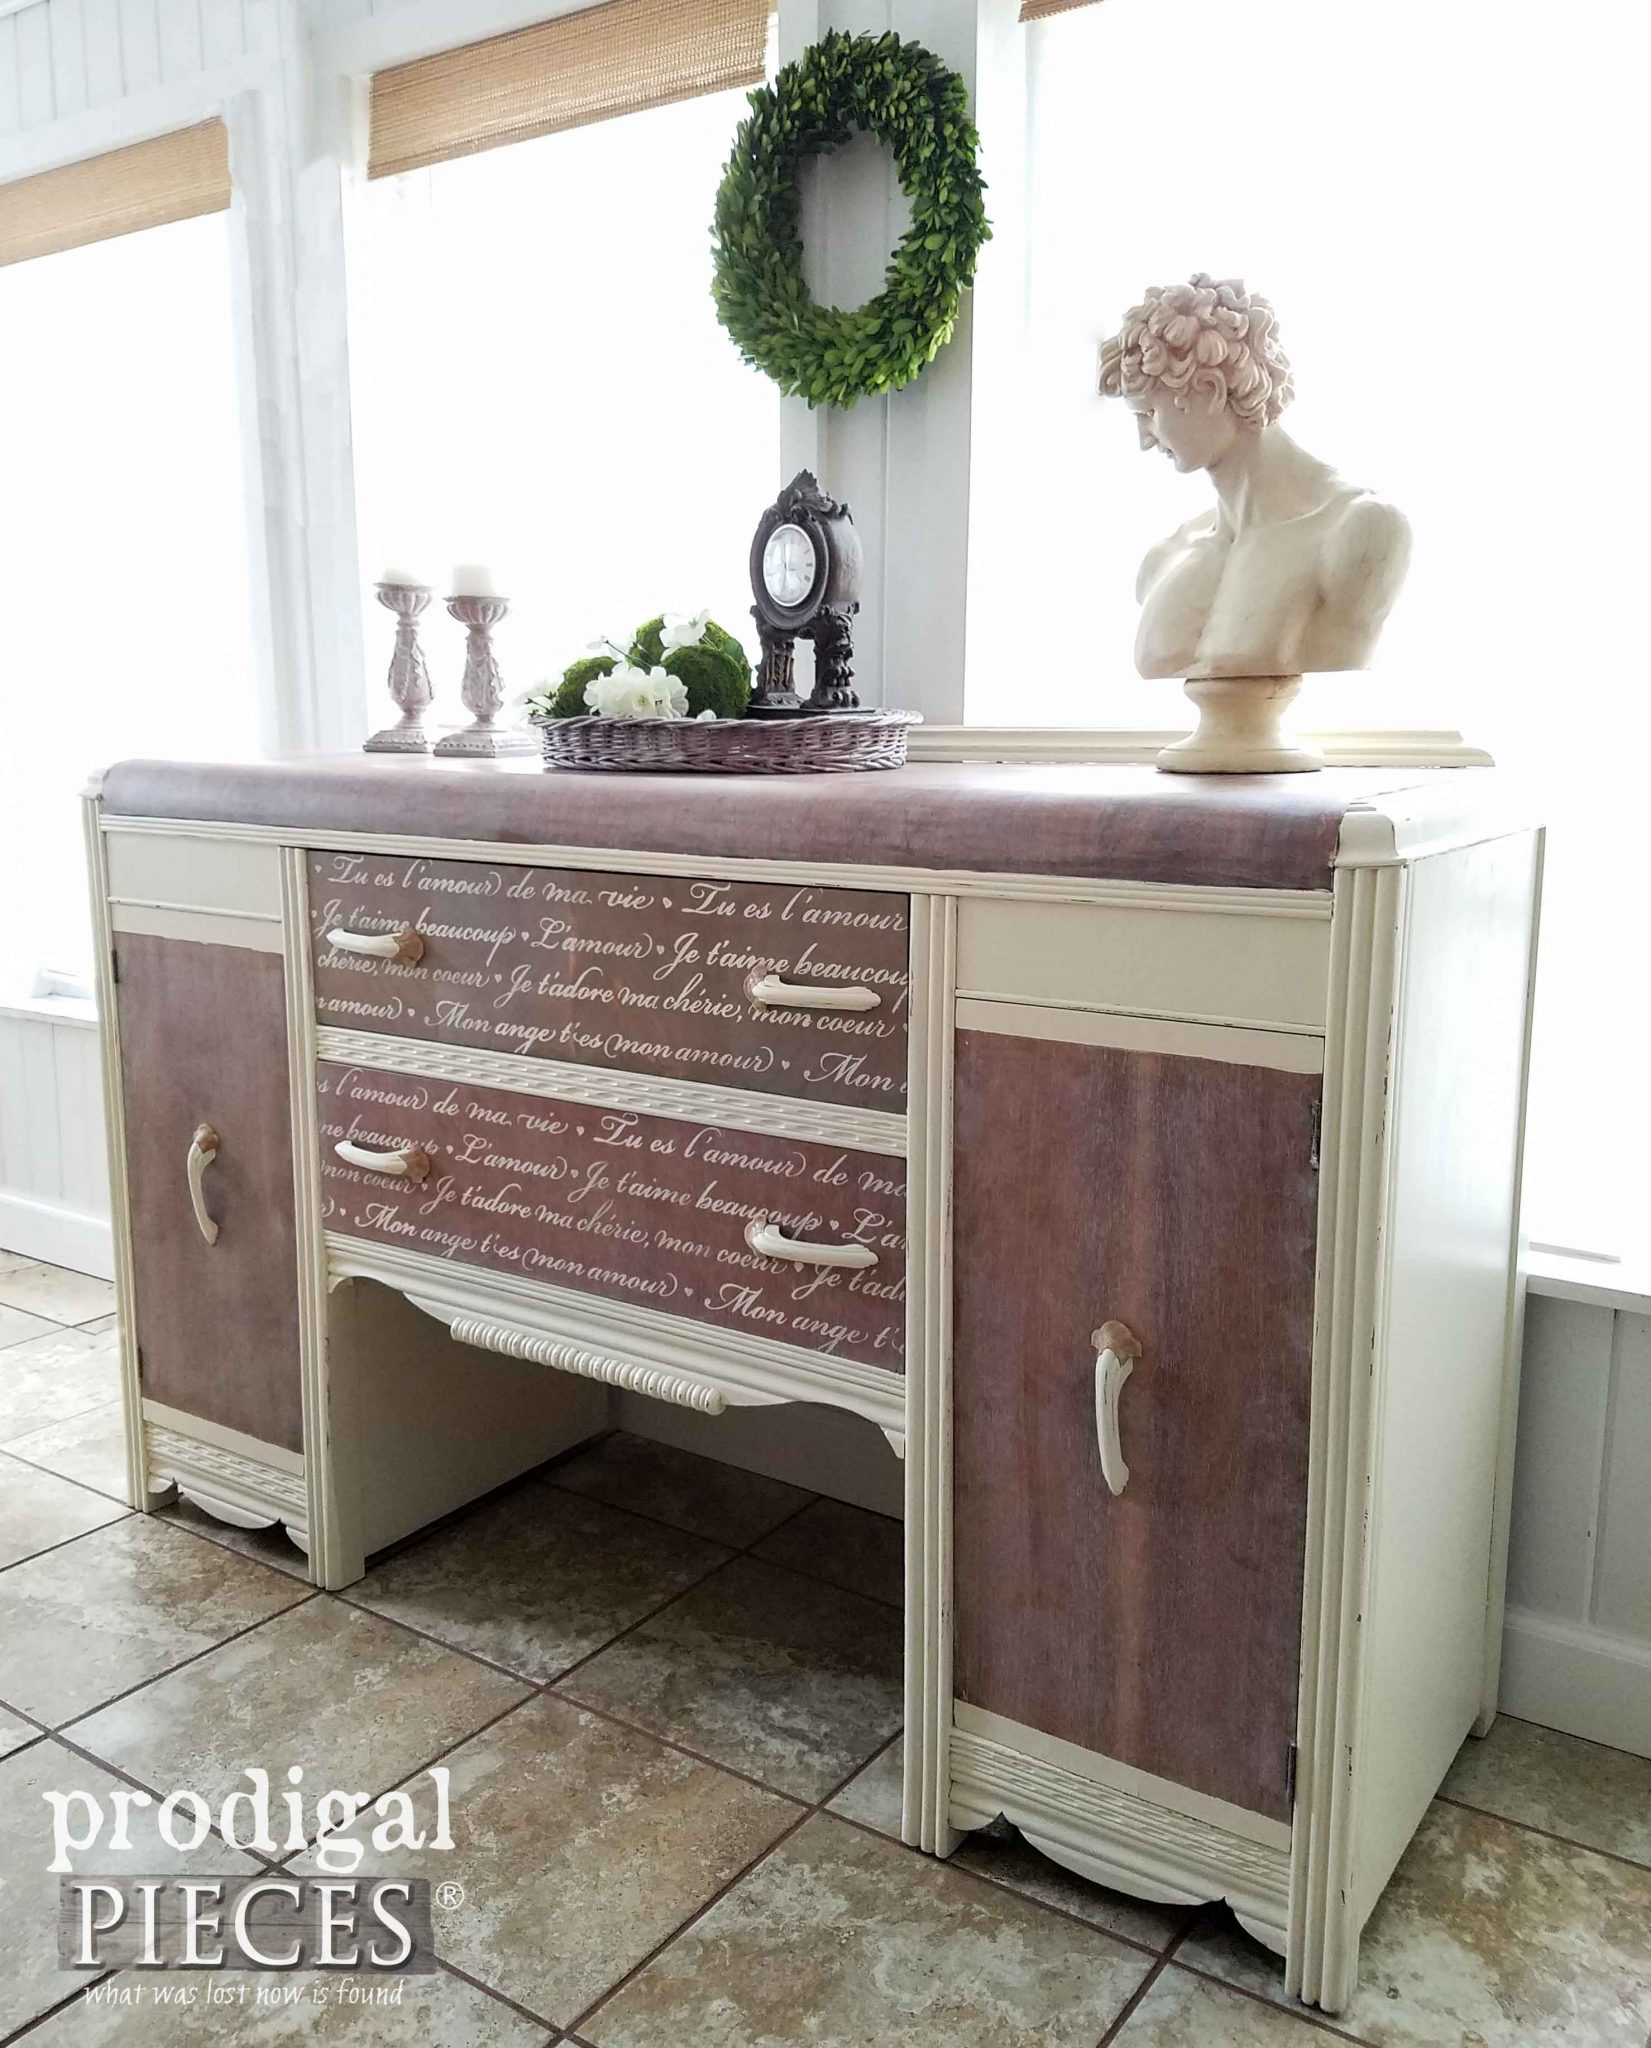 Vintage Art Deco Buffet features French Script by Prodigal Pieces | prodigalpieces.com